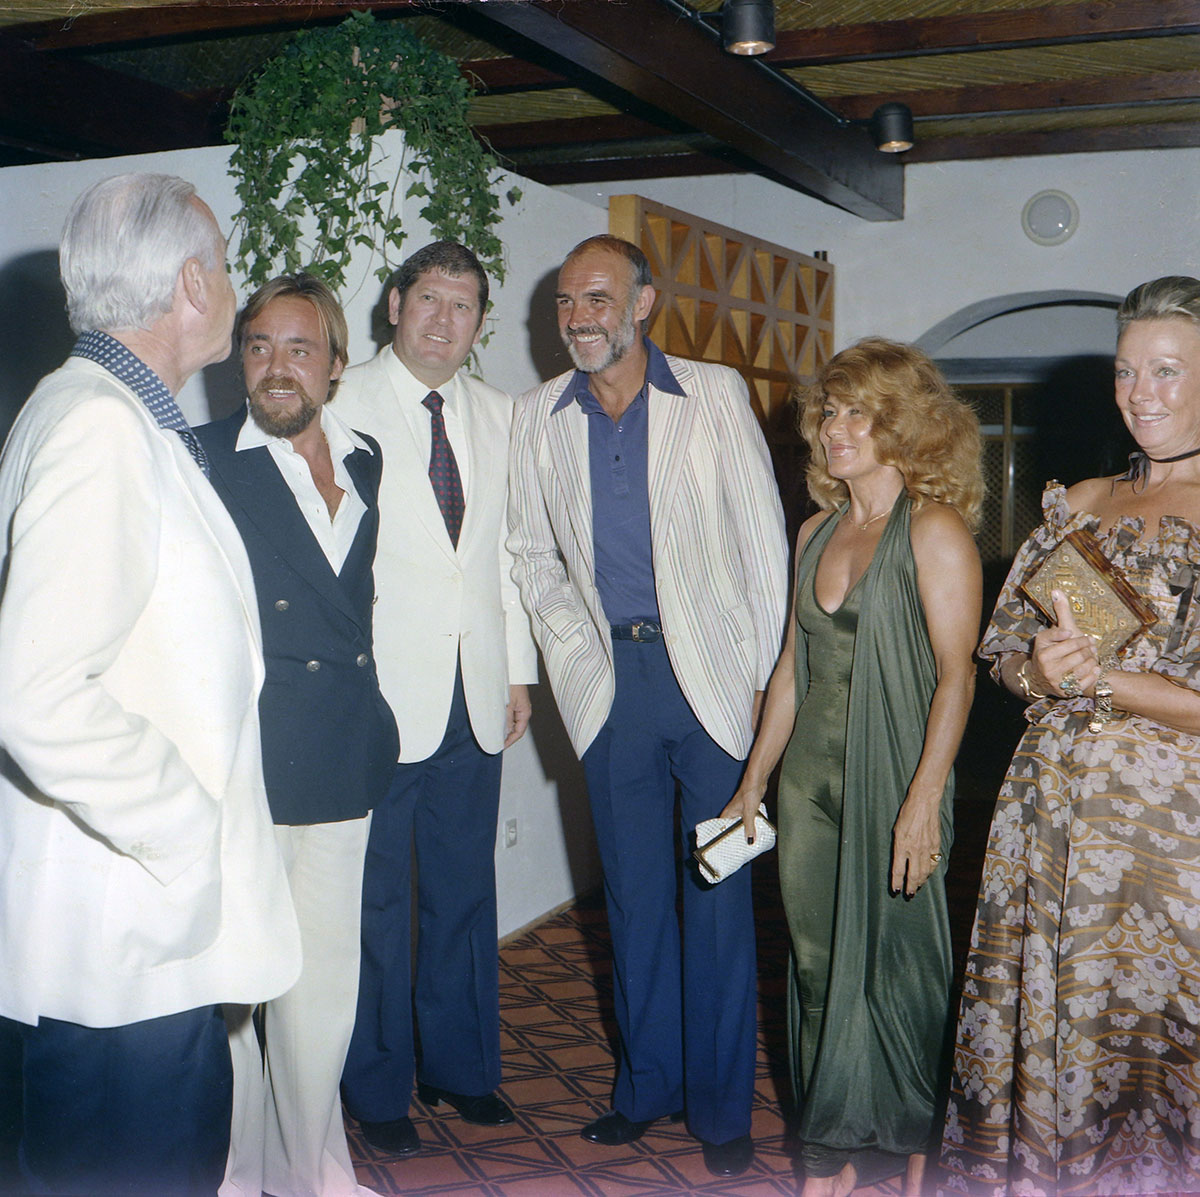 Sean Connery arrives at the Puente Romano hotel